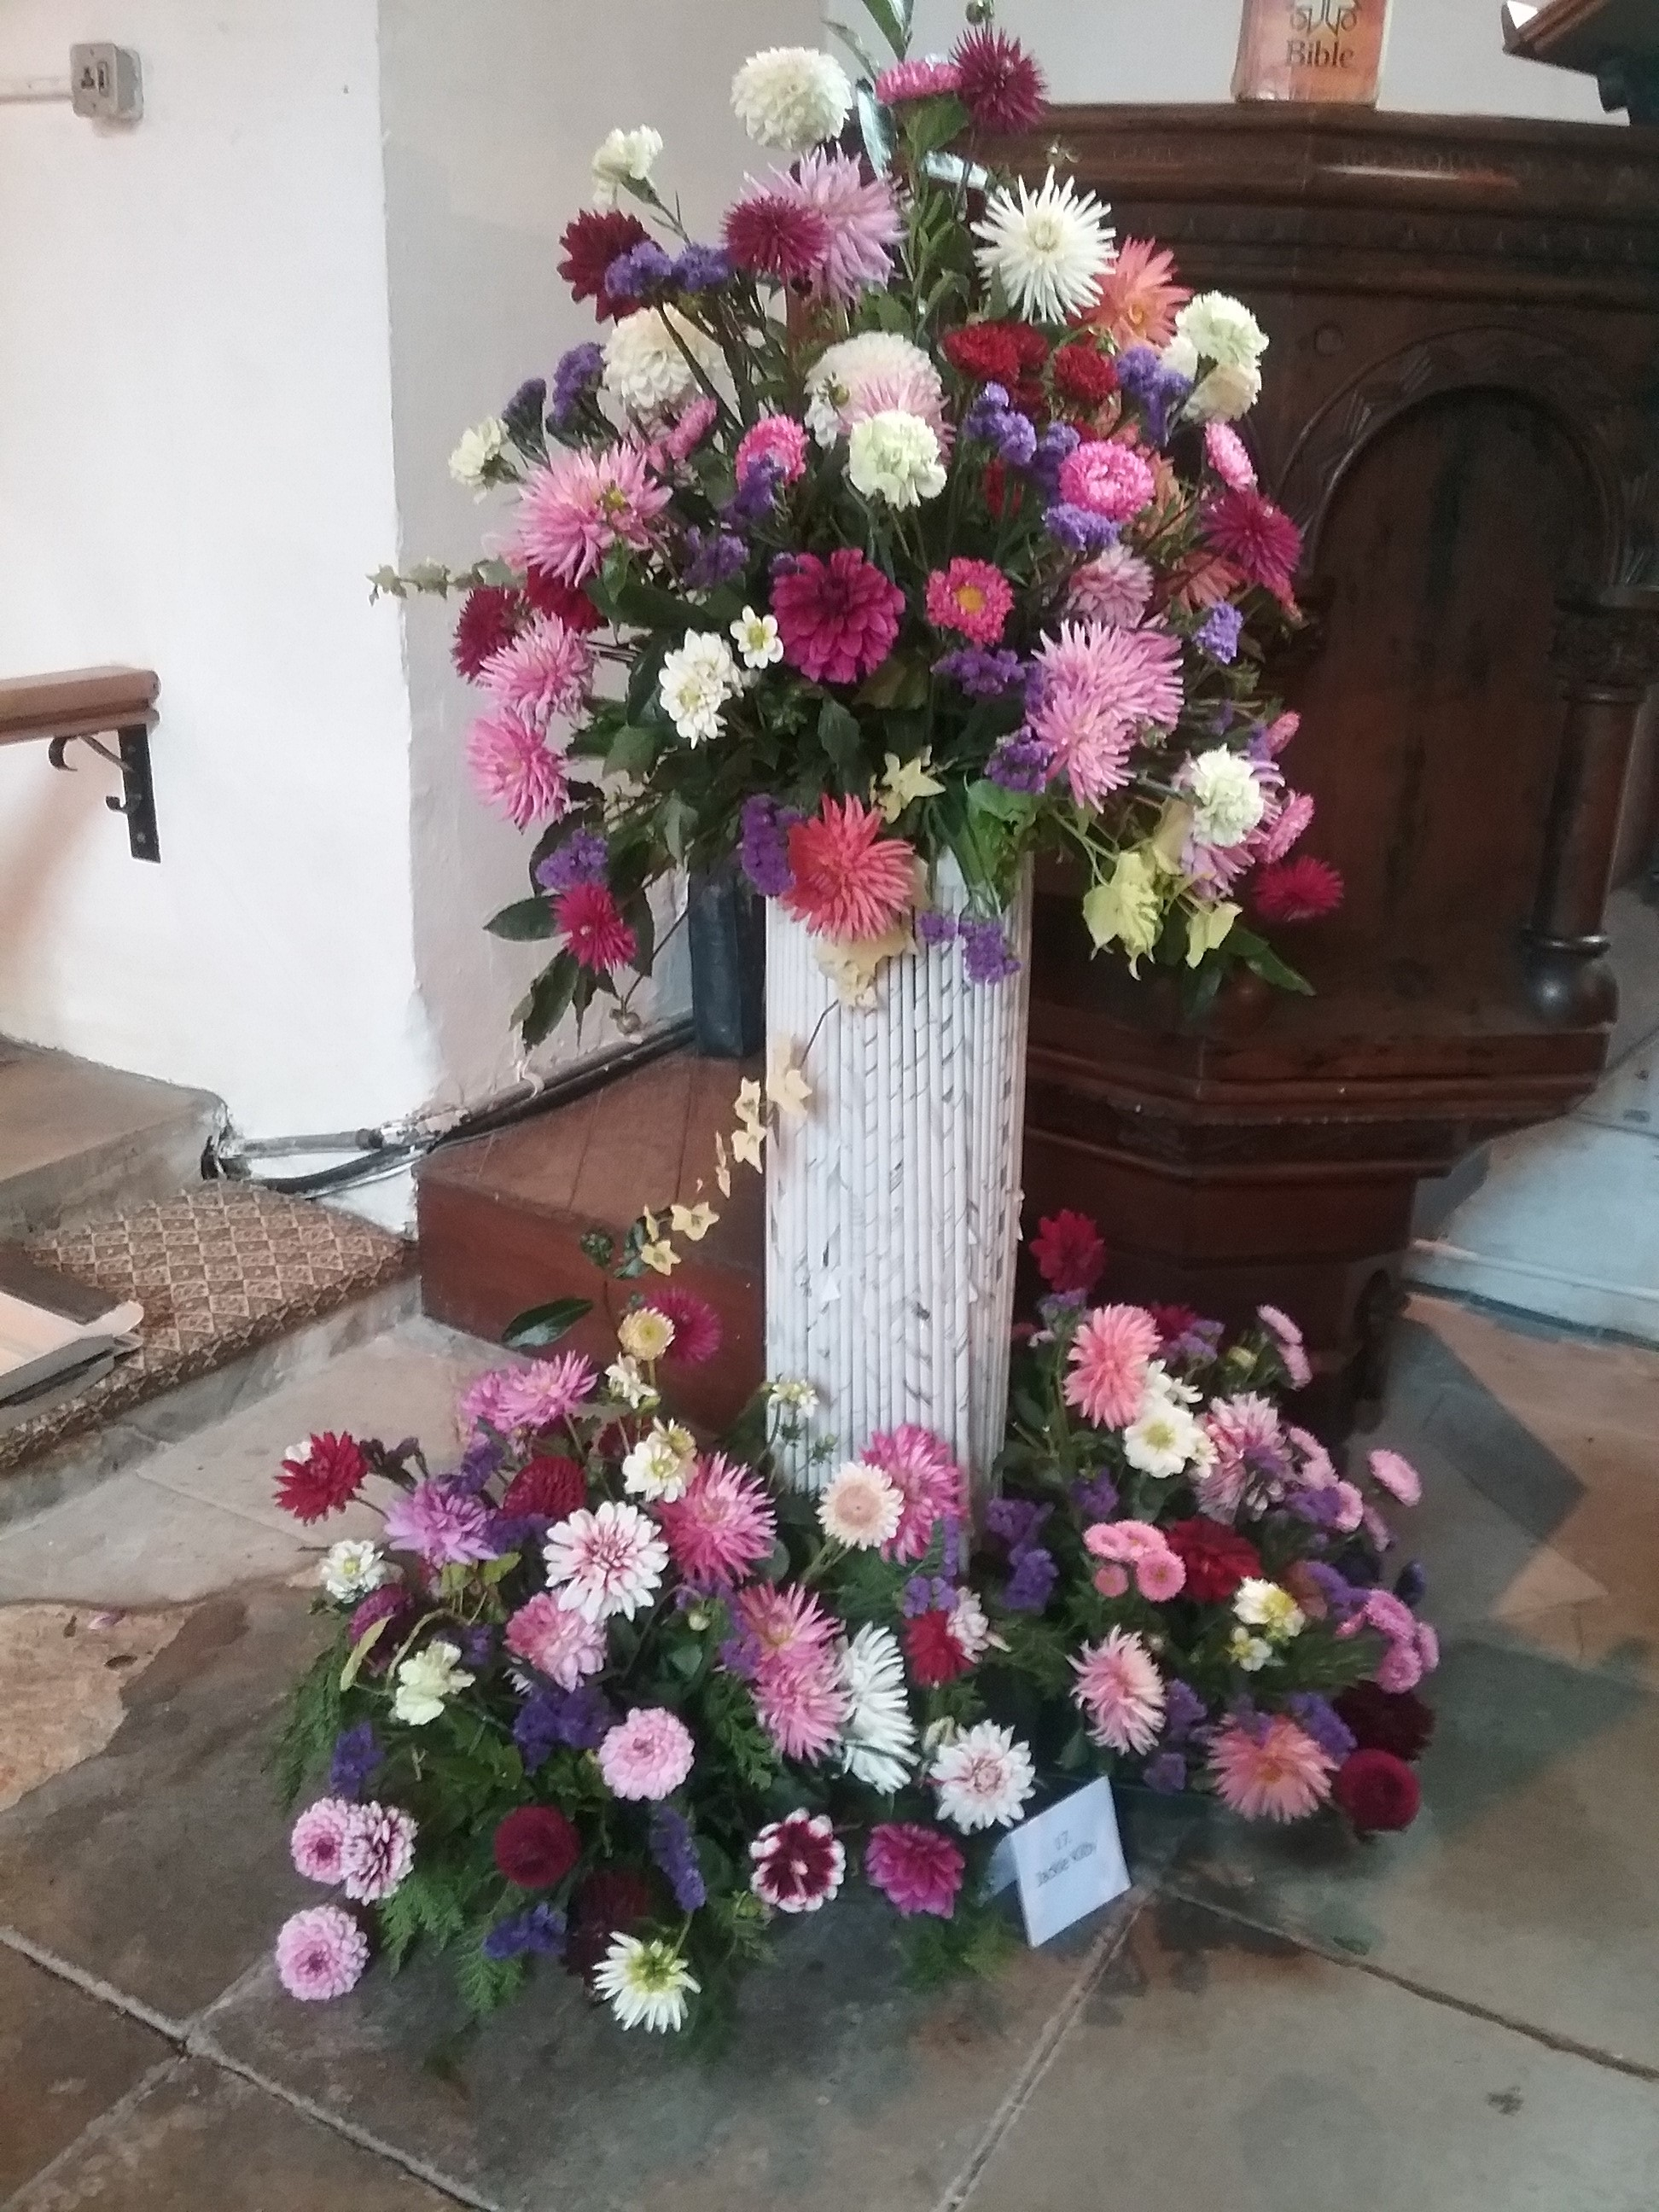 Flower Festival & Art Exhibition